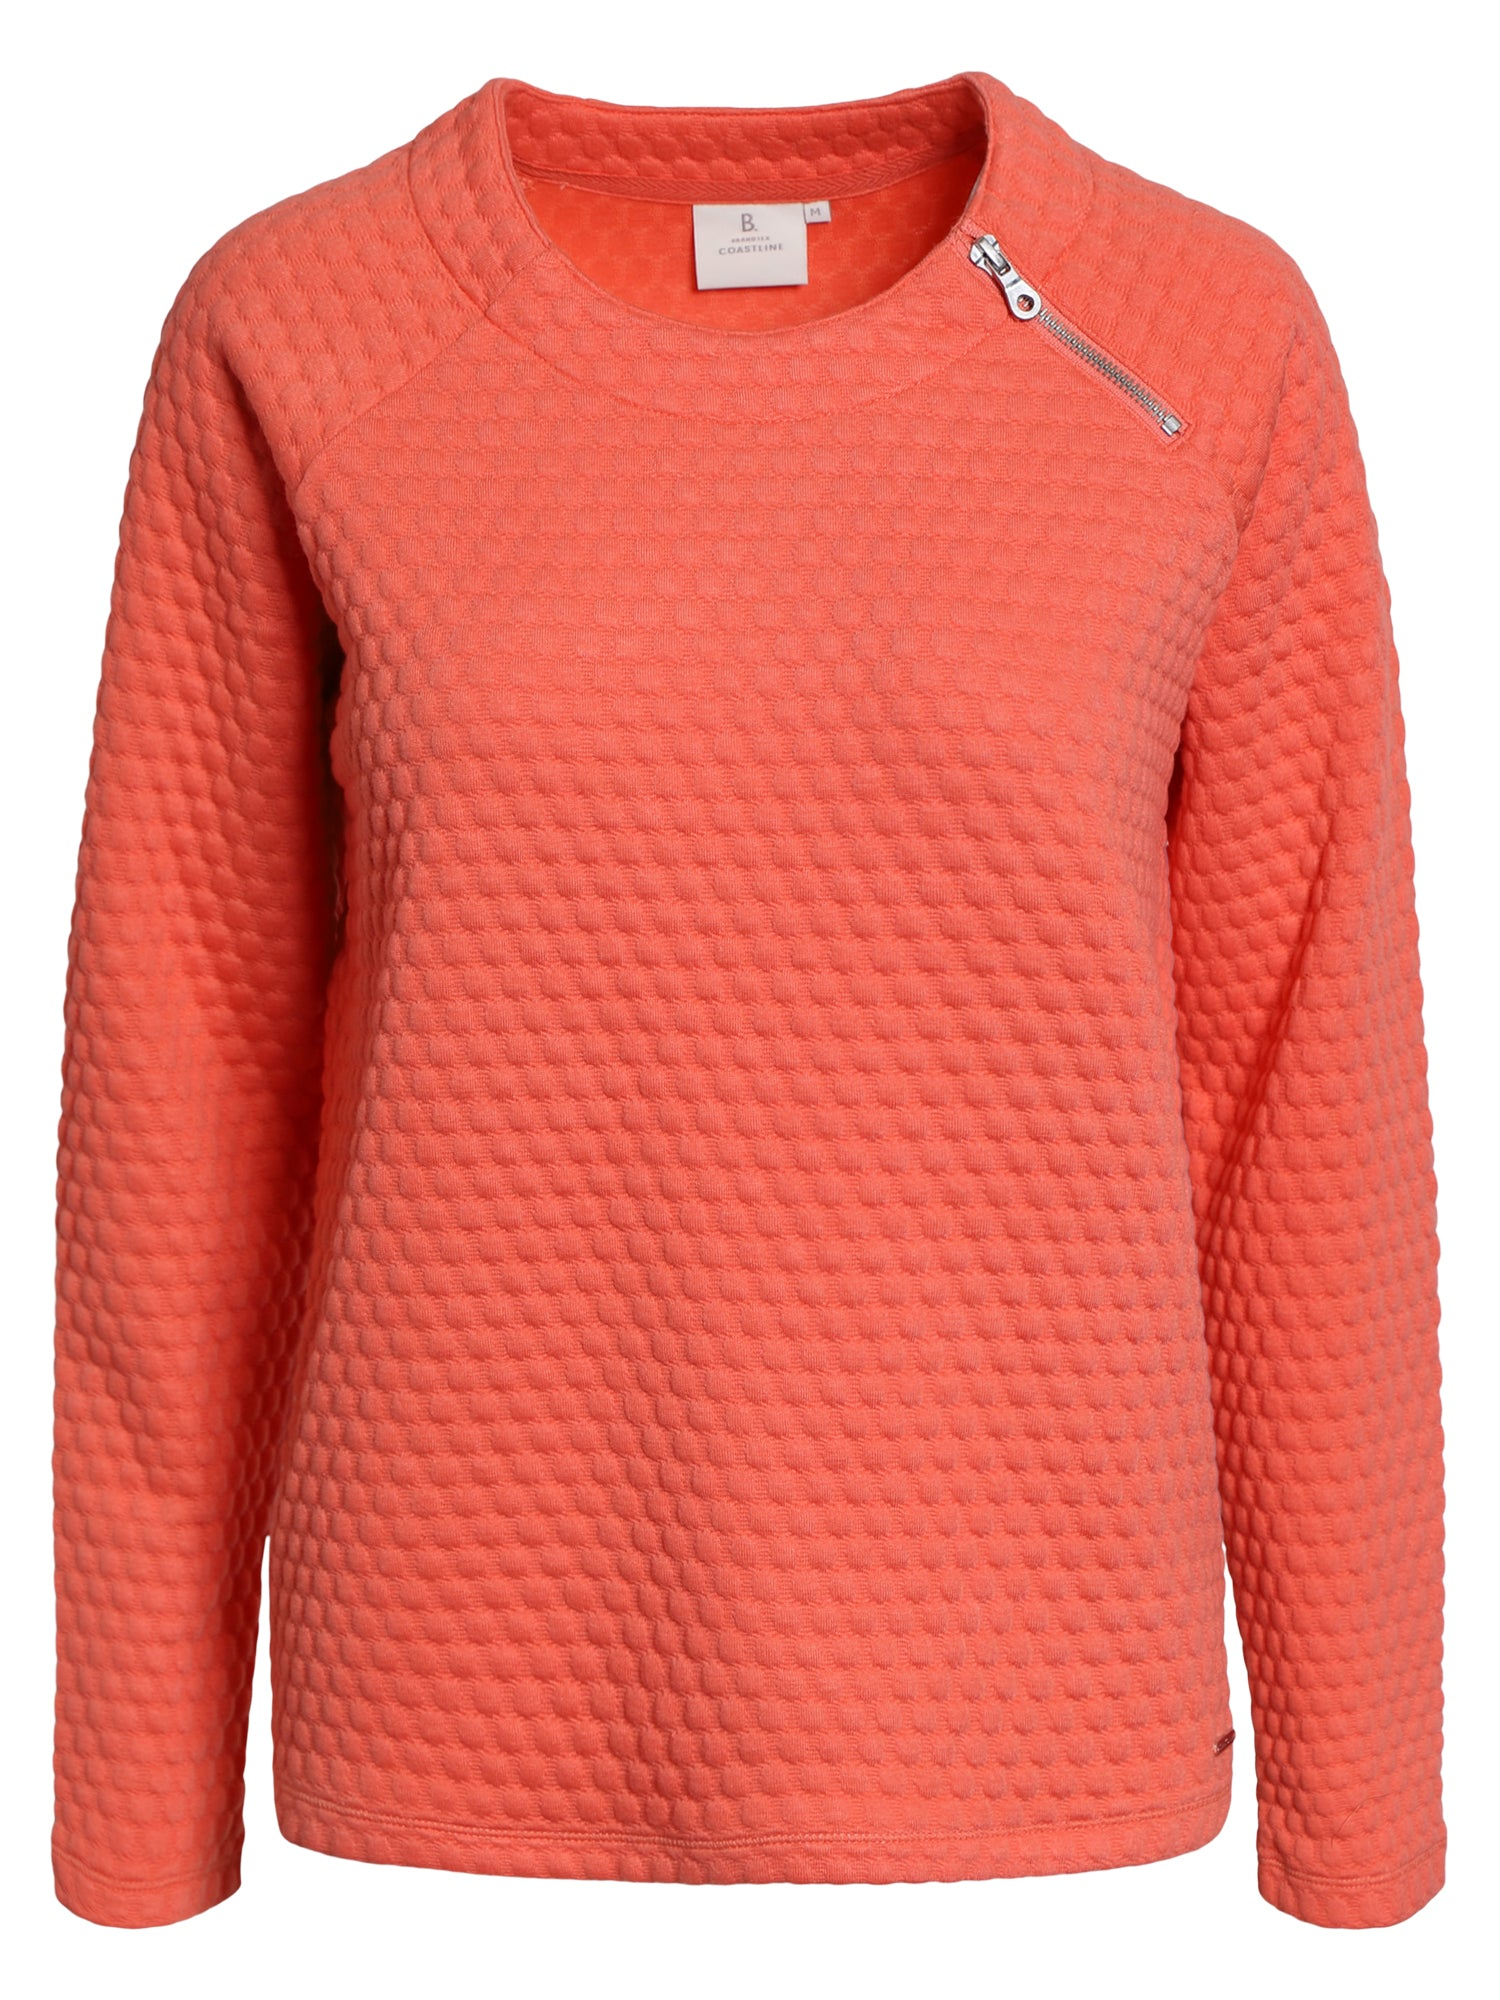 Image of   Sweatshirt - Living Coral